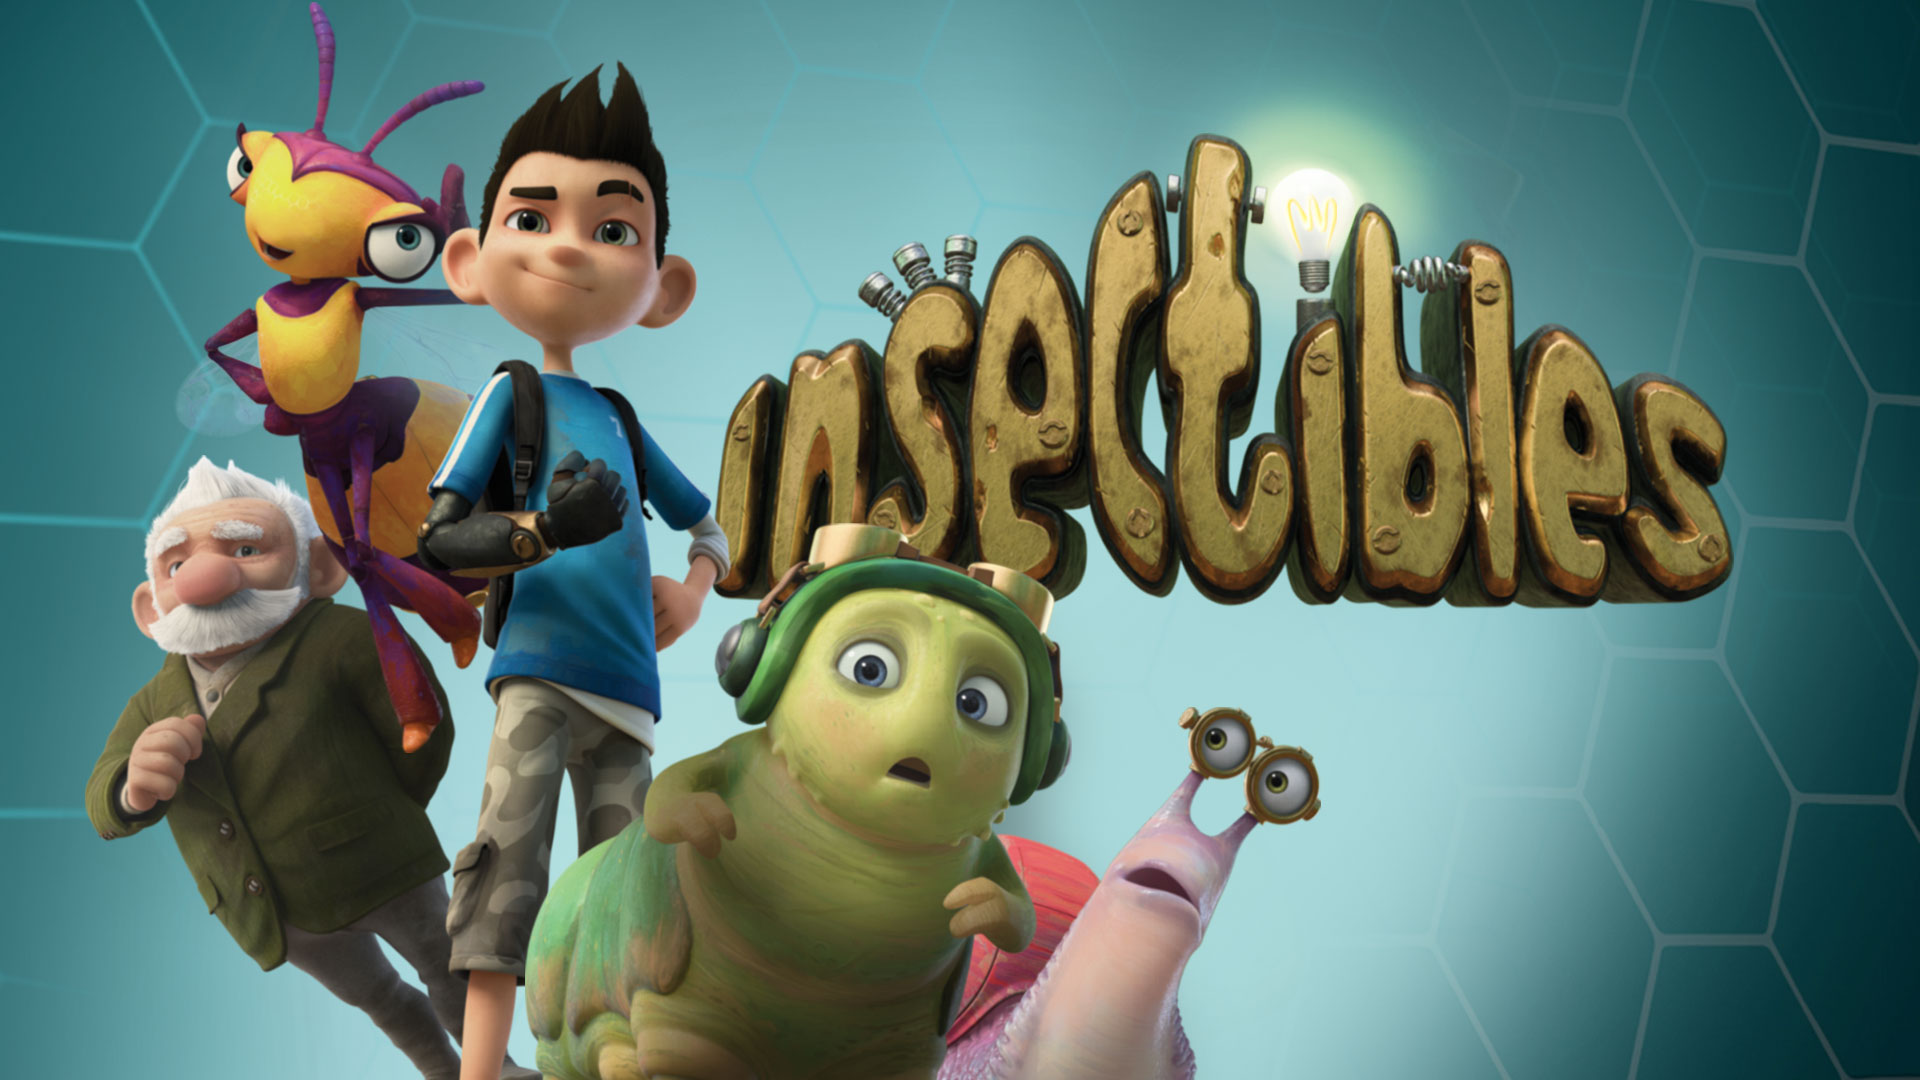 The insectibles